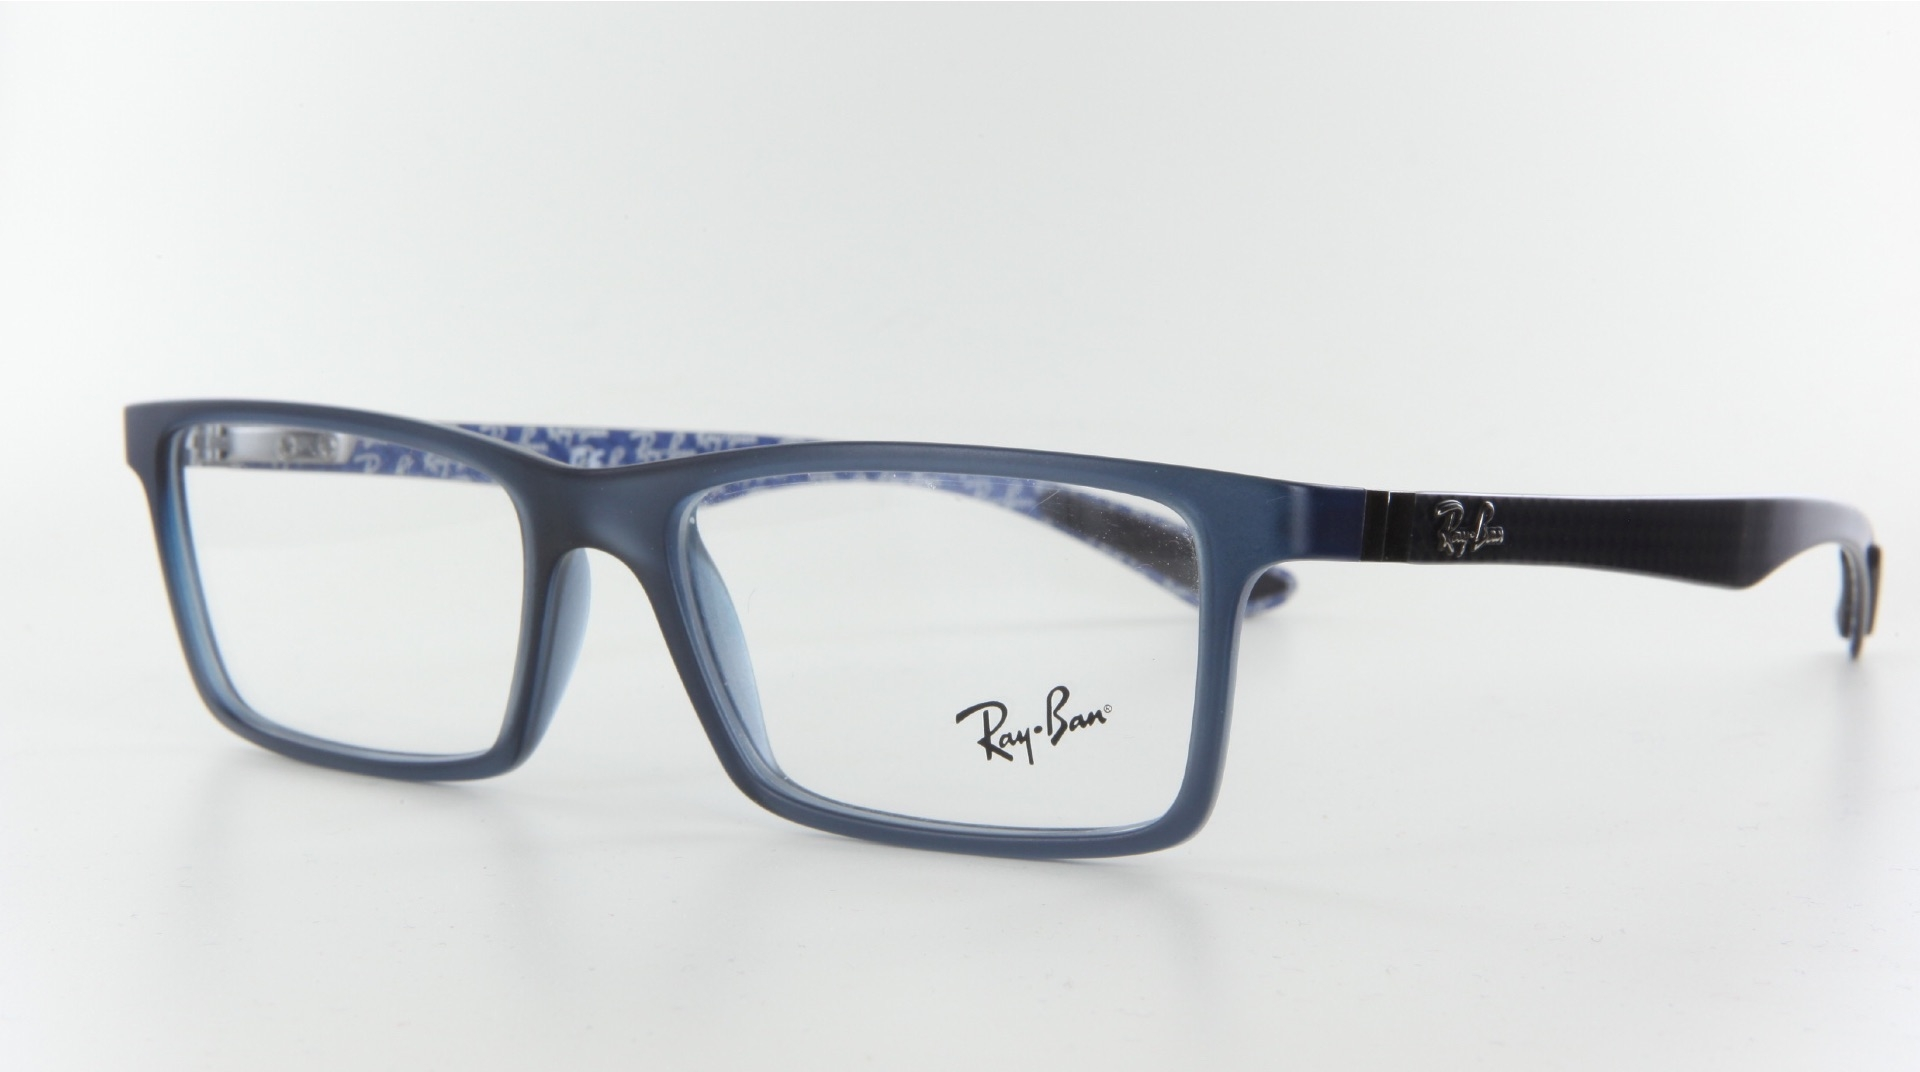 Ray-Ban - ref: 70856